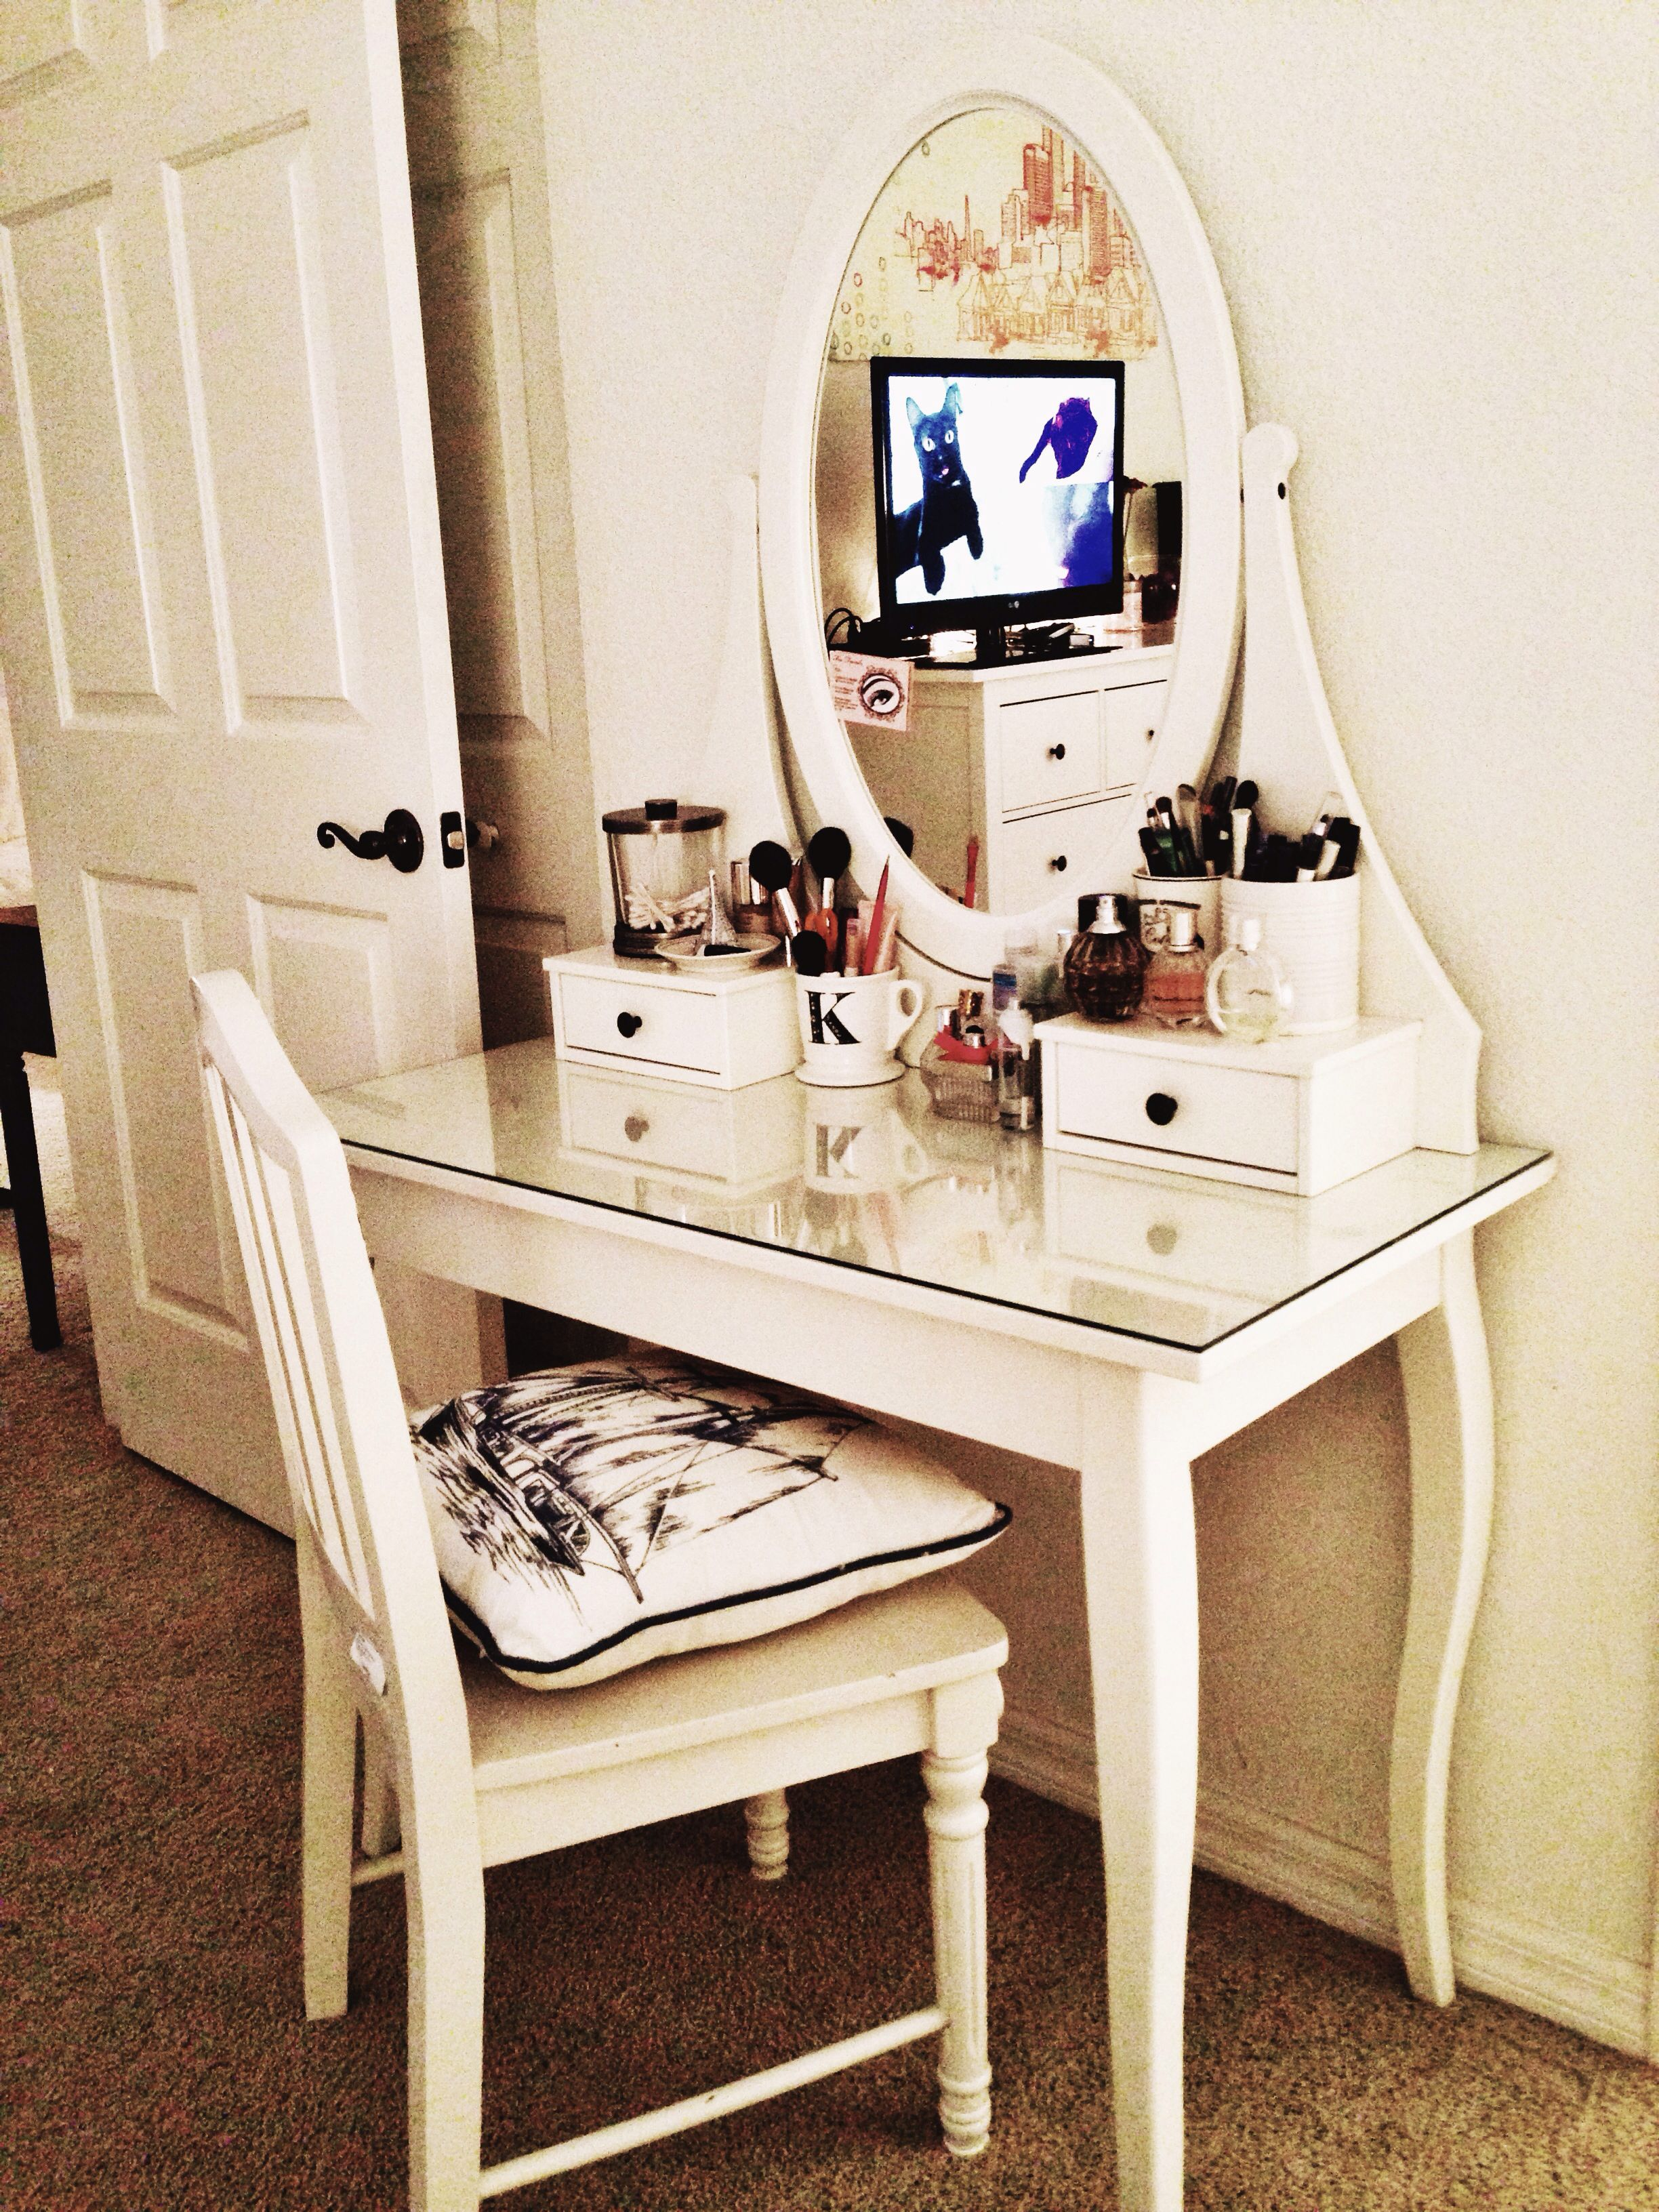 awesome Ikea Vanity Room Part - 3: My new Hemnes dressing table from ikea!!!! Yay!